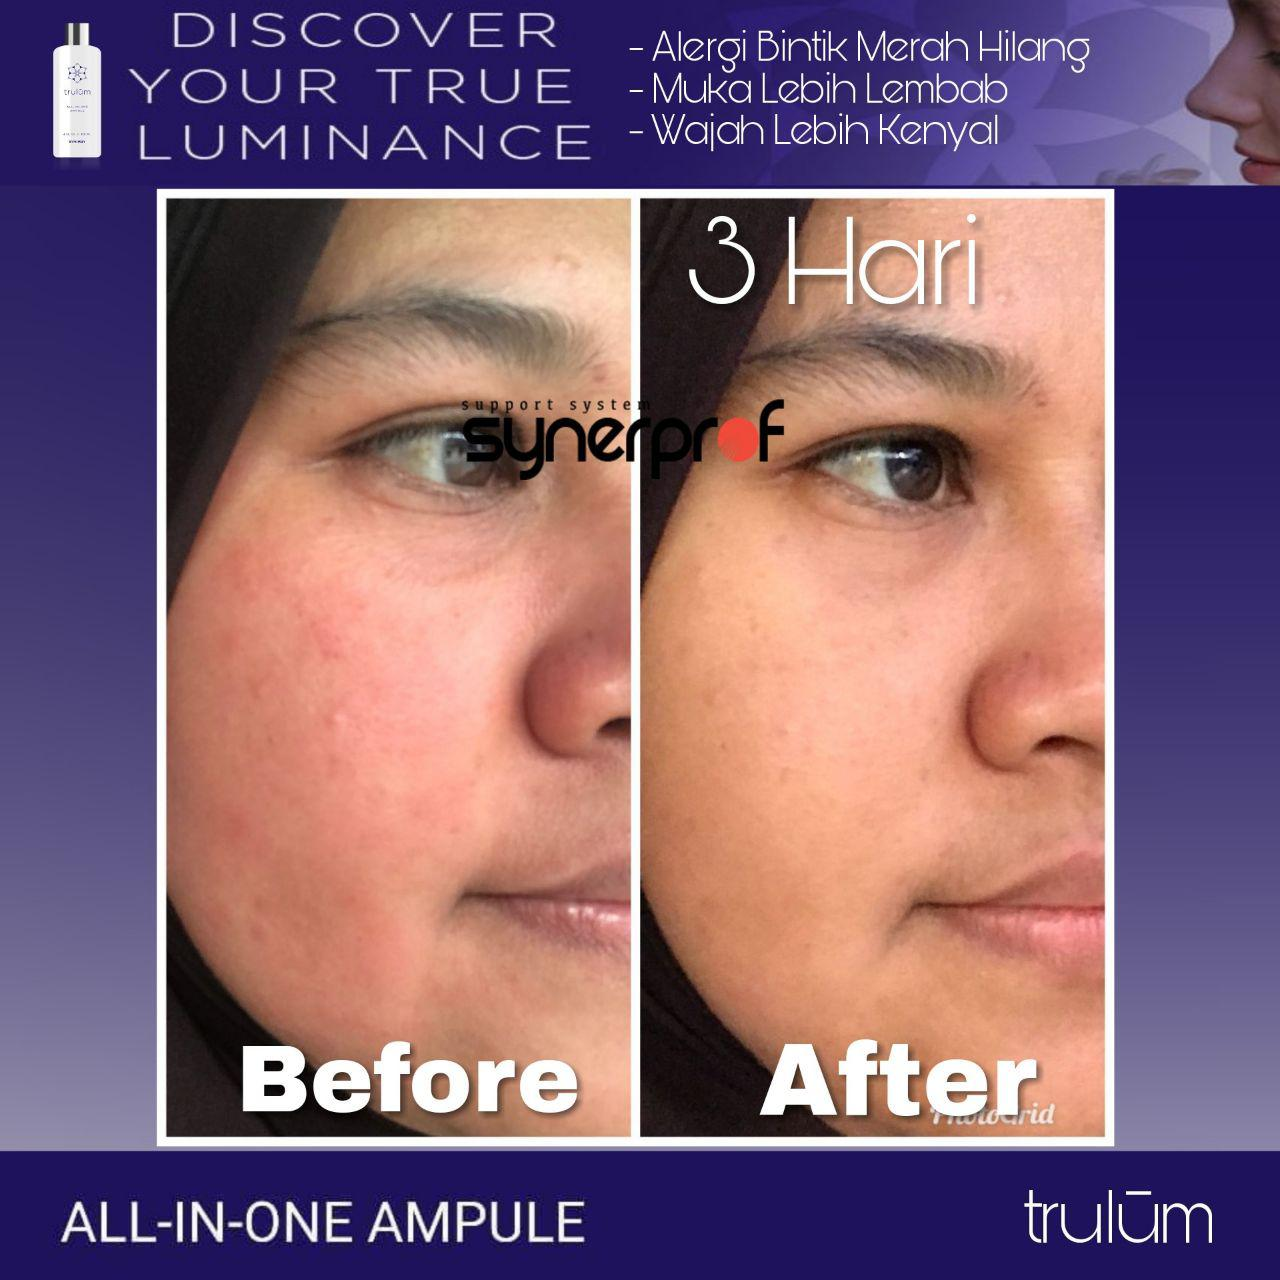 Jual Trulum All In One Ampoule Di Arso Timur, Keerom WA: 08112338376